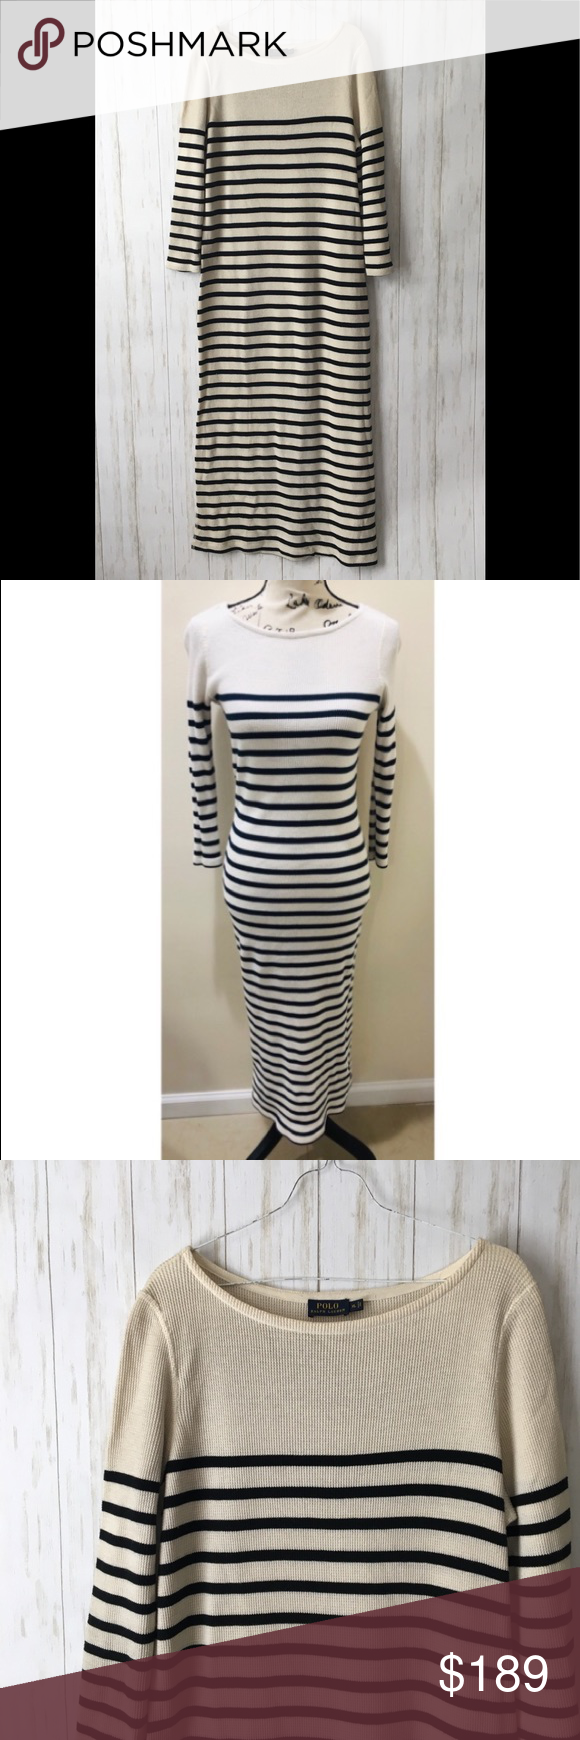 Polo Ralph Lauren Striped Thermal Knit Maxi Dress Maxi Knit Dress Maxi Dress Clothes Design [ 1740 x 580 Pixel ]